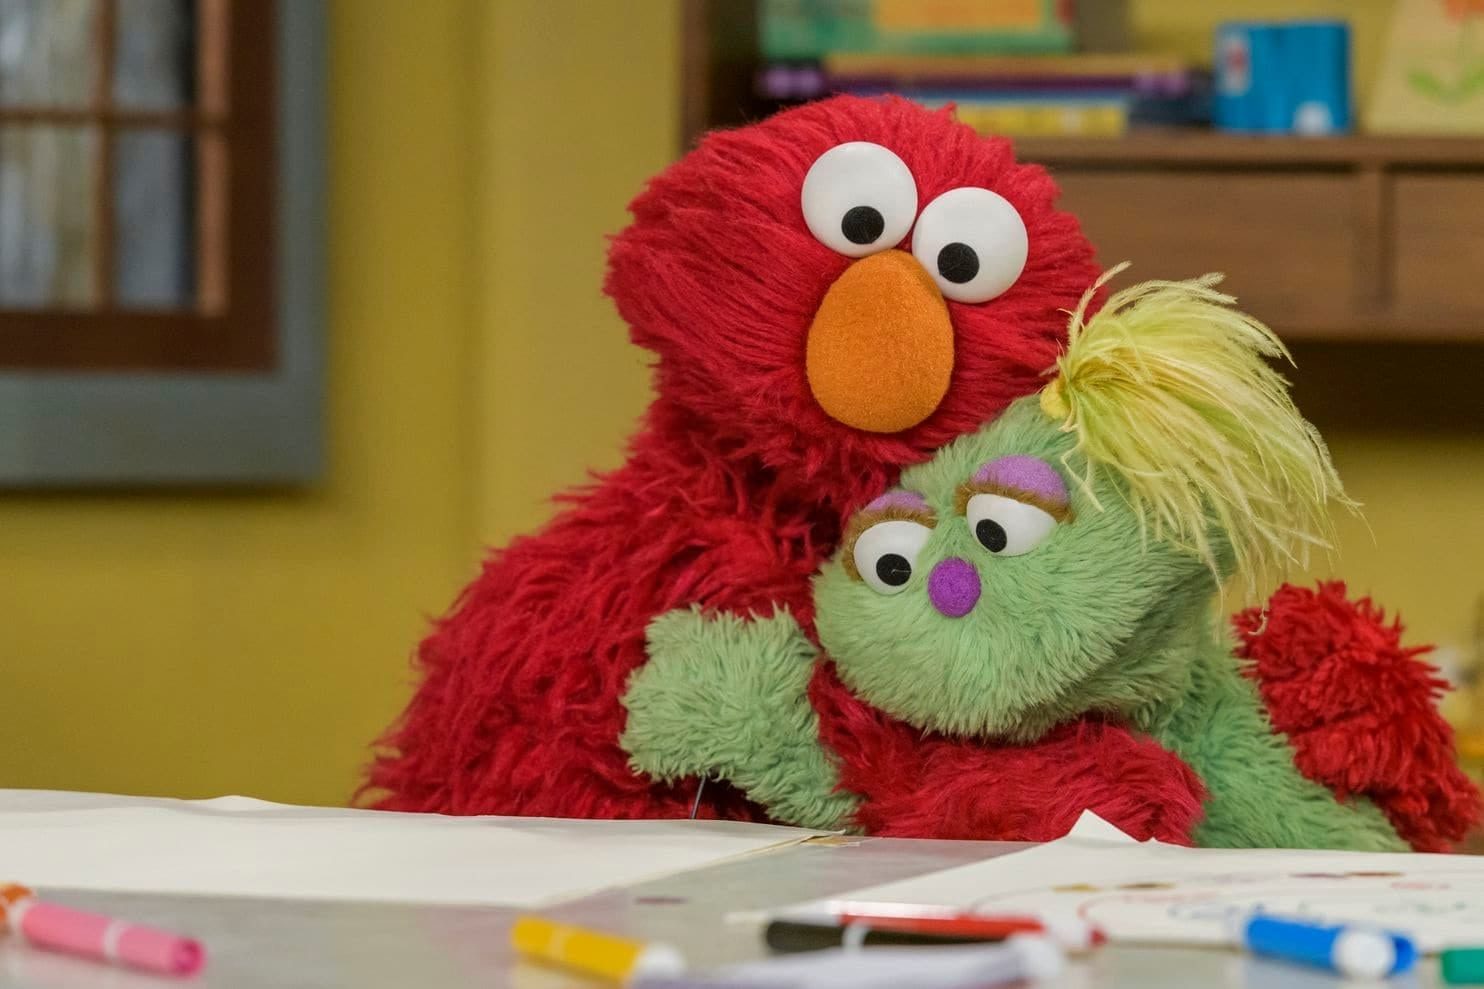 (Zach Hyman/Sesame Workshop)